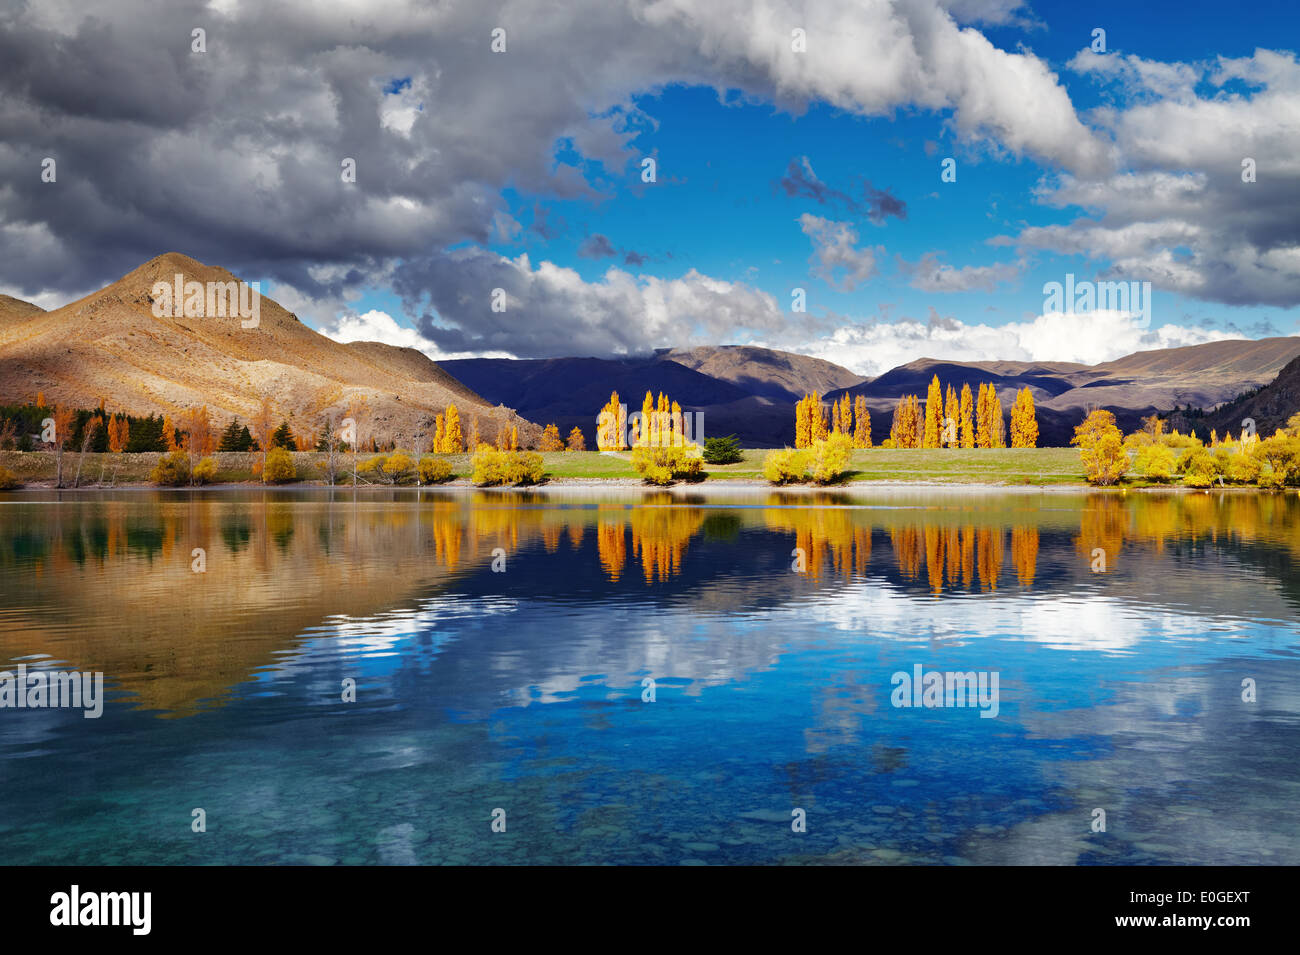 Mountain landscape in autumn colors, Lake Benmore, New Zealand - Stock Image